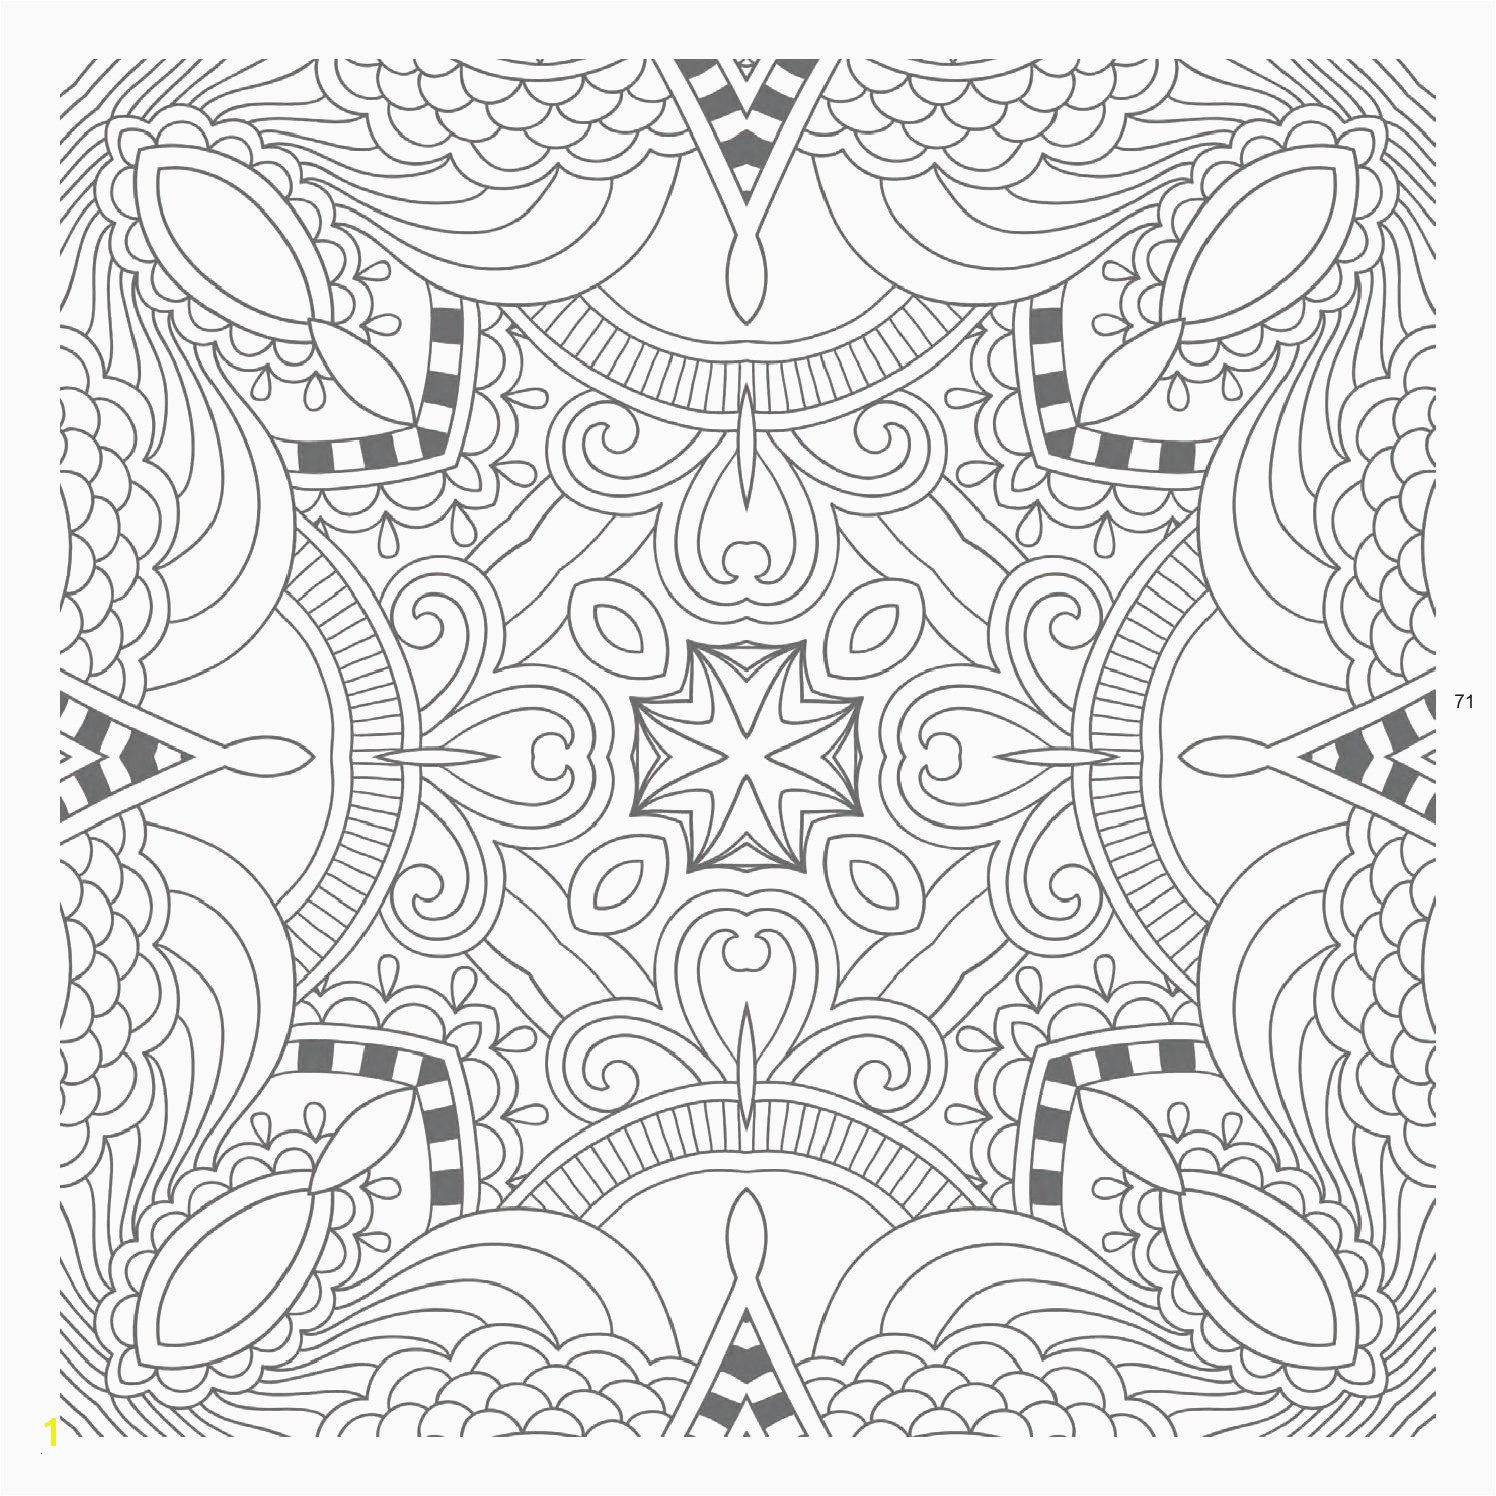 Coloring Books for Grown Ups Celtic Mandala Coloring Pages Mandalas Coloring Line Inspirational Mandala Coloring Line